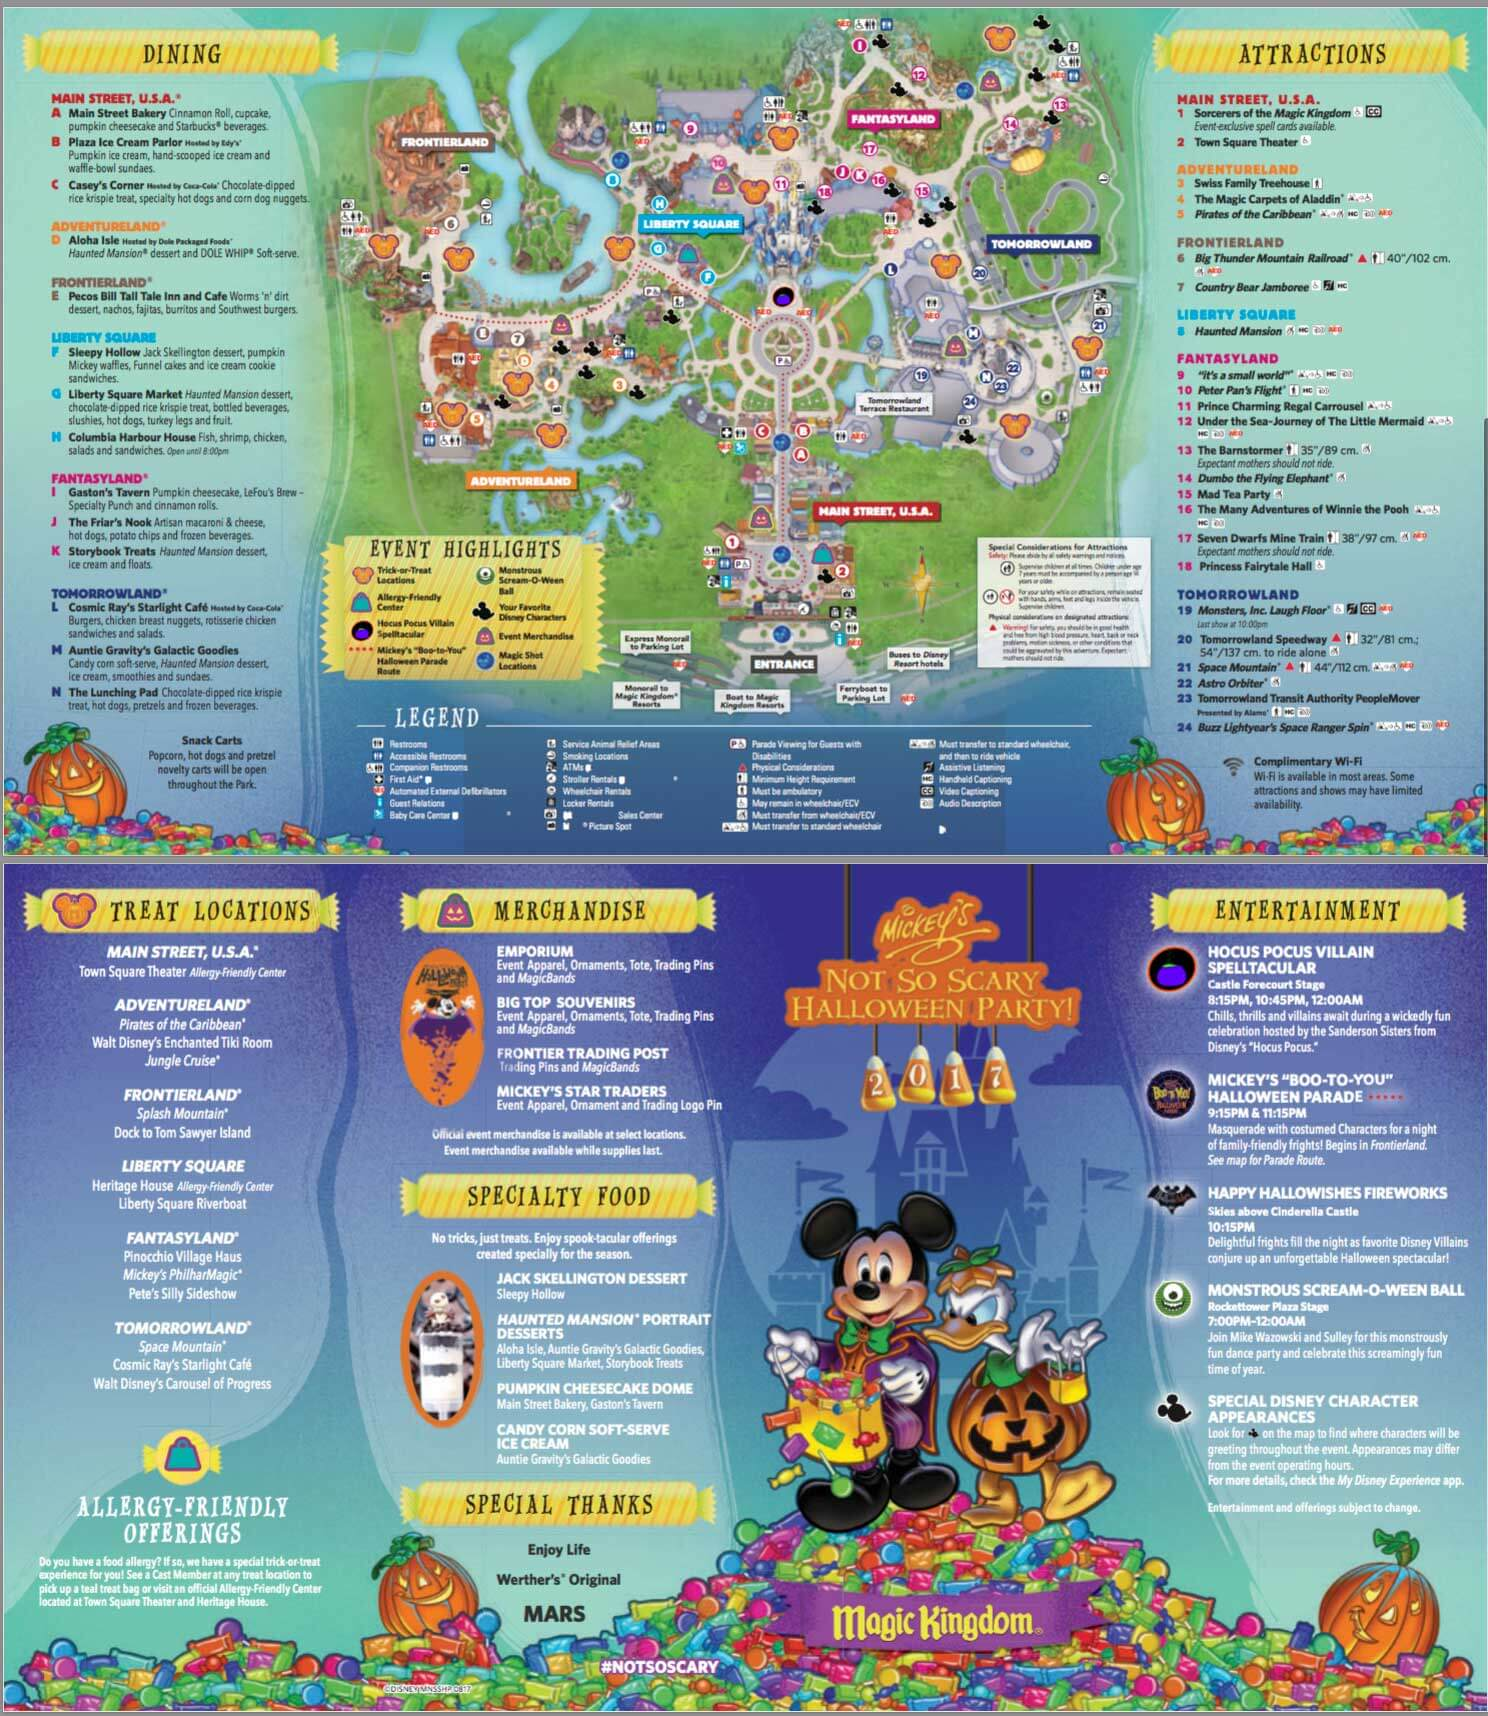 mickeys not so scary halloween party map 2017 disney halloween party map 2017 - Disneys Not So Scary Halloween Party